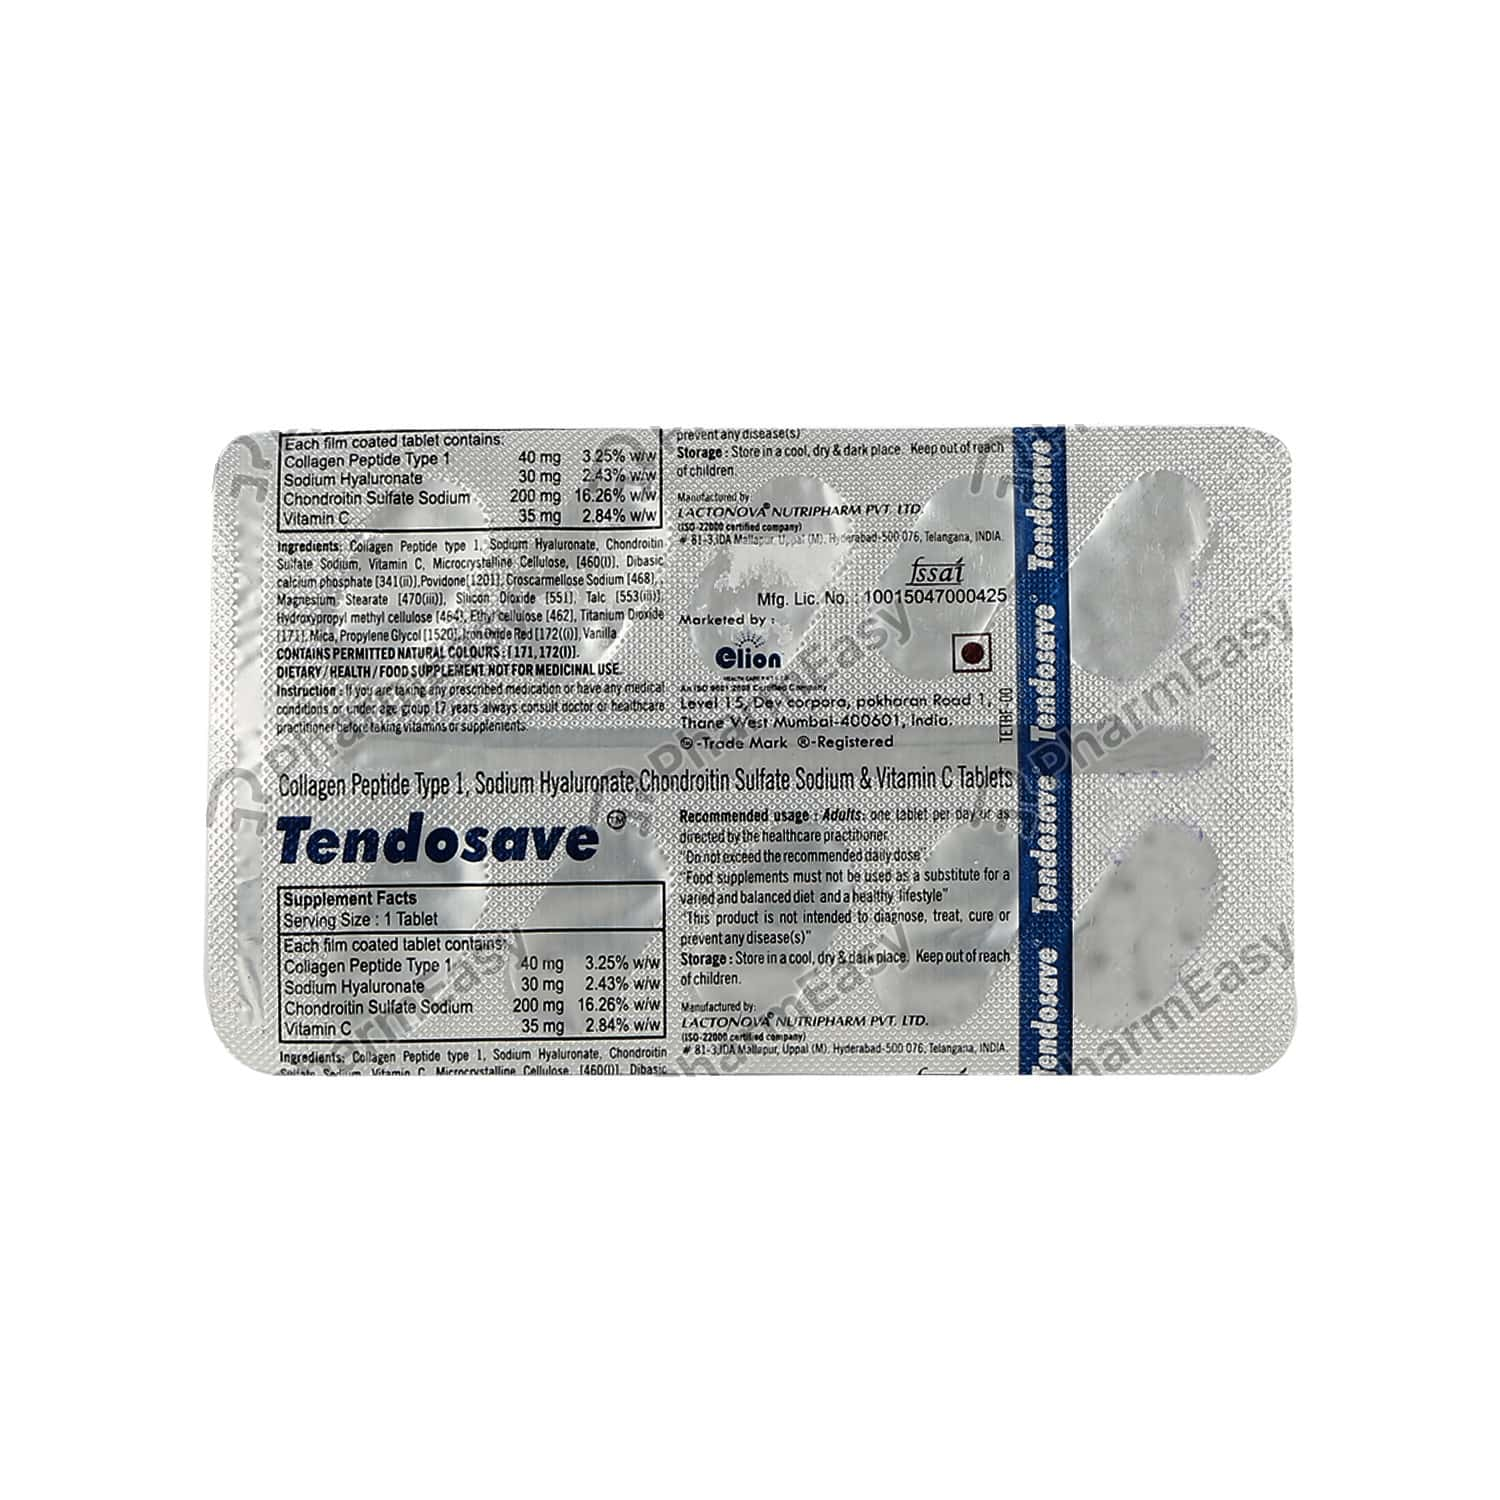 Tendosave Tablet